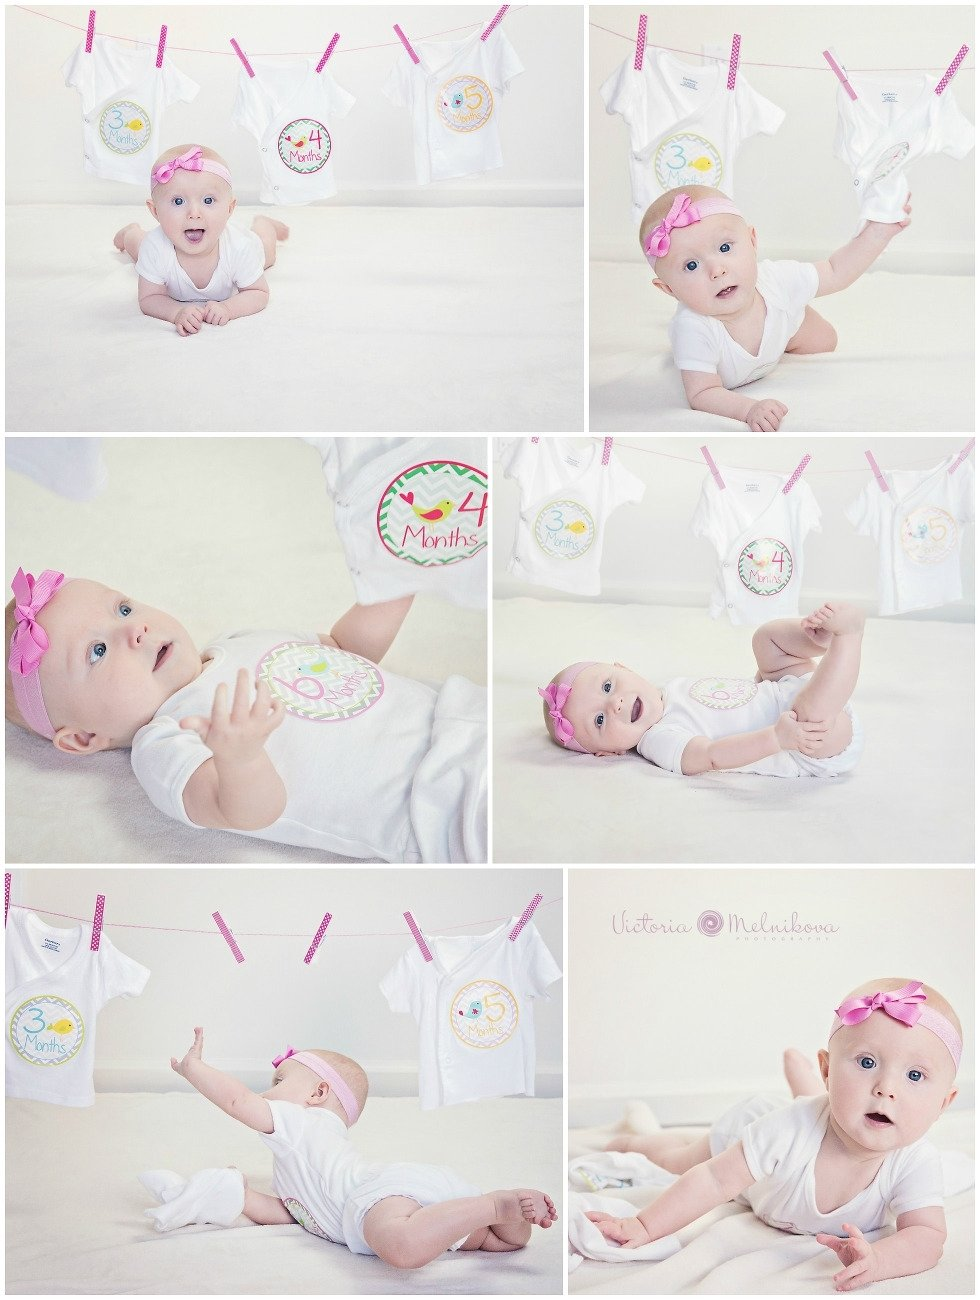 10 Fabulous 6 Month Baby Picture Ideas cute 6 month baby activity photo ideas collections photo and